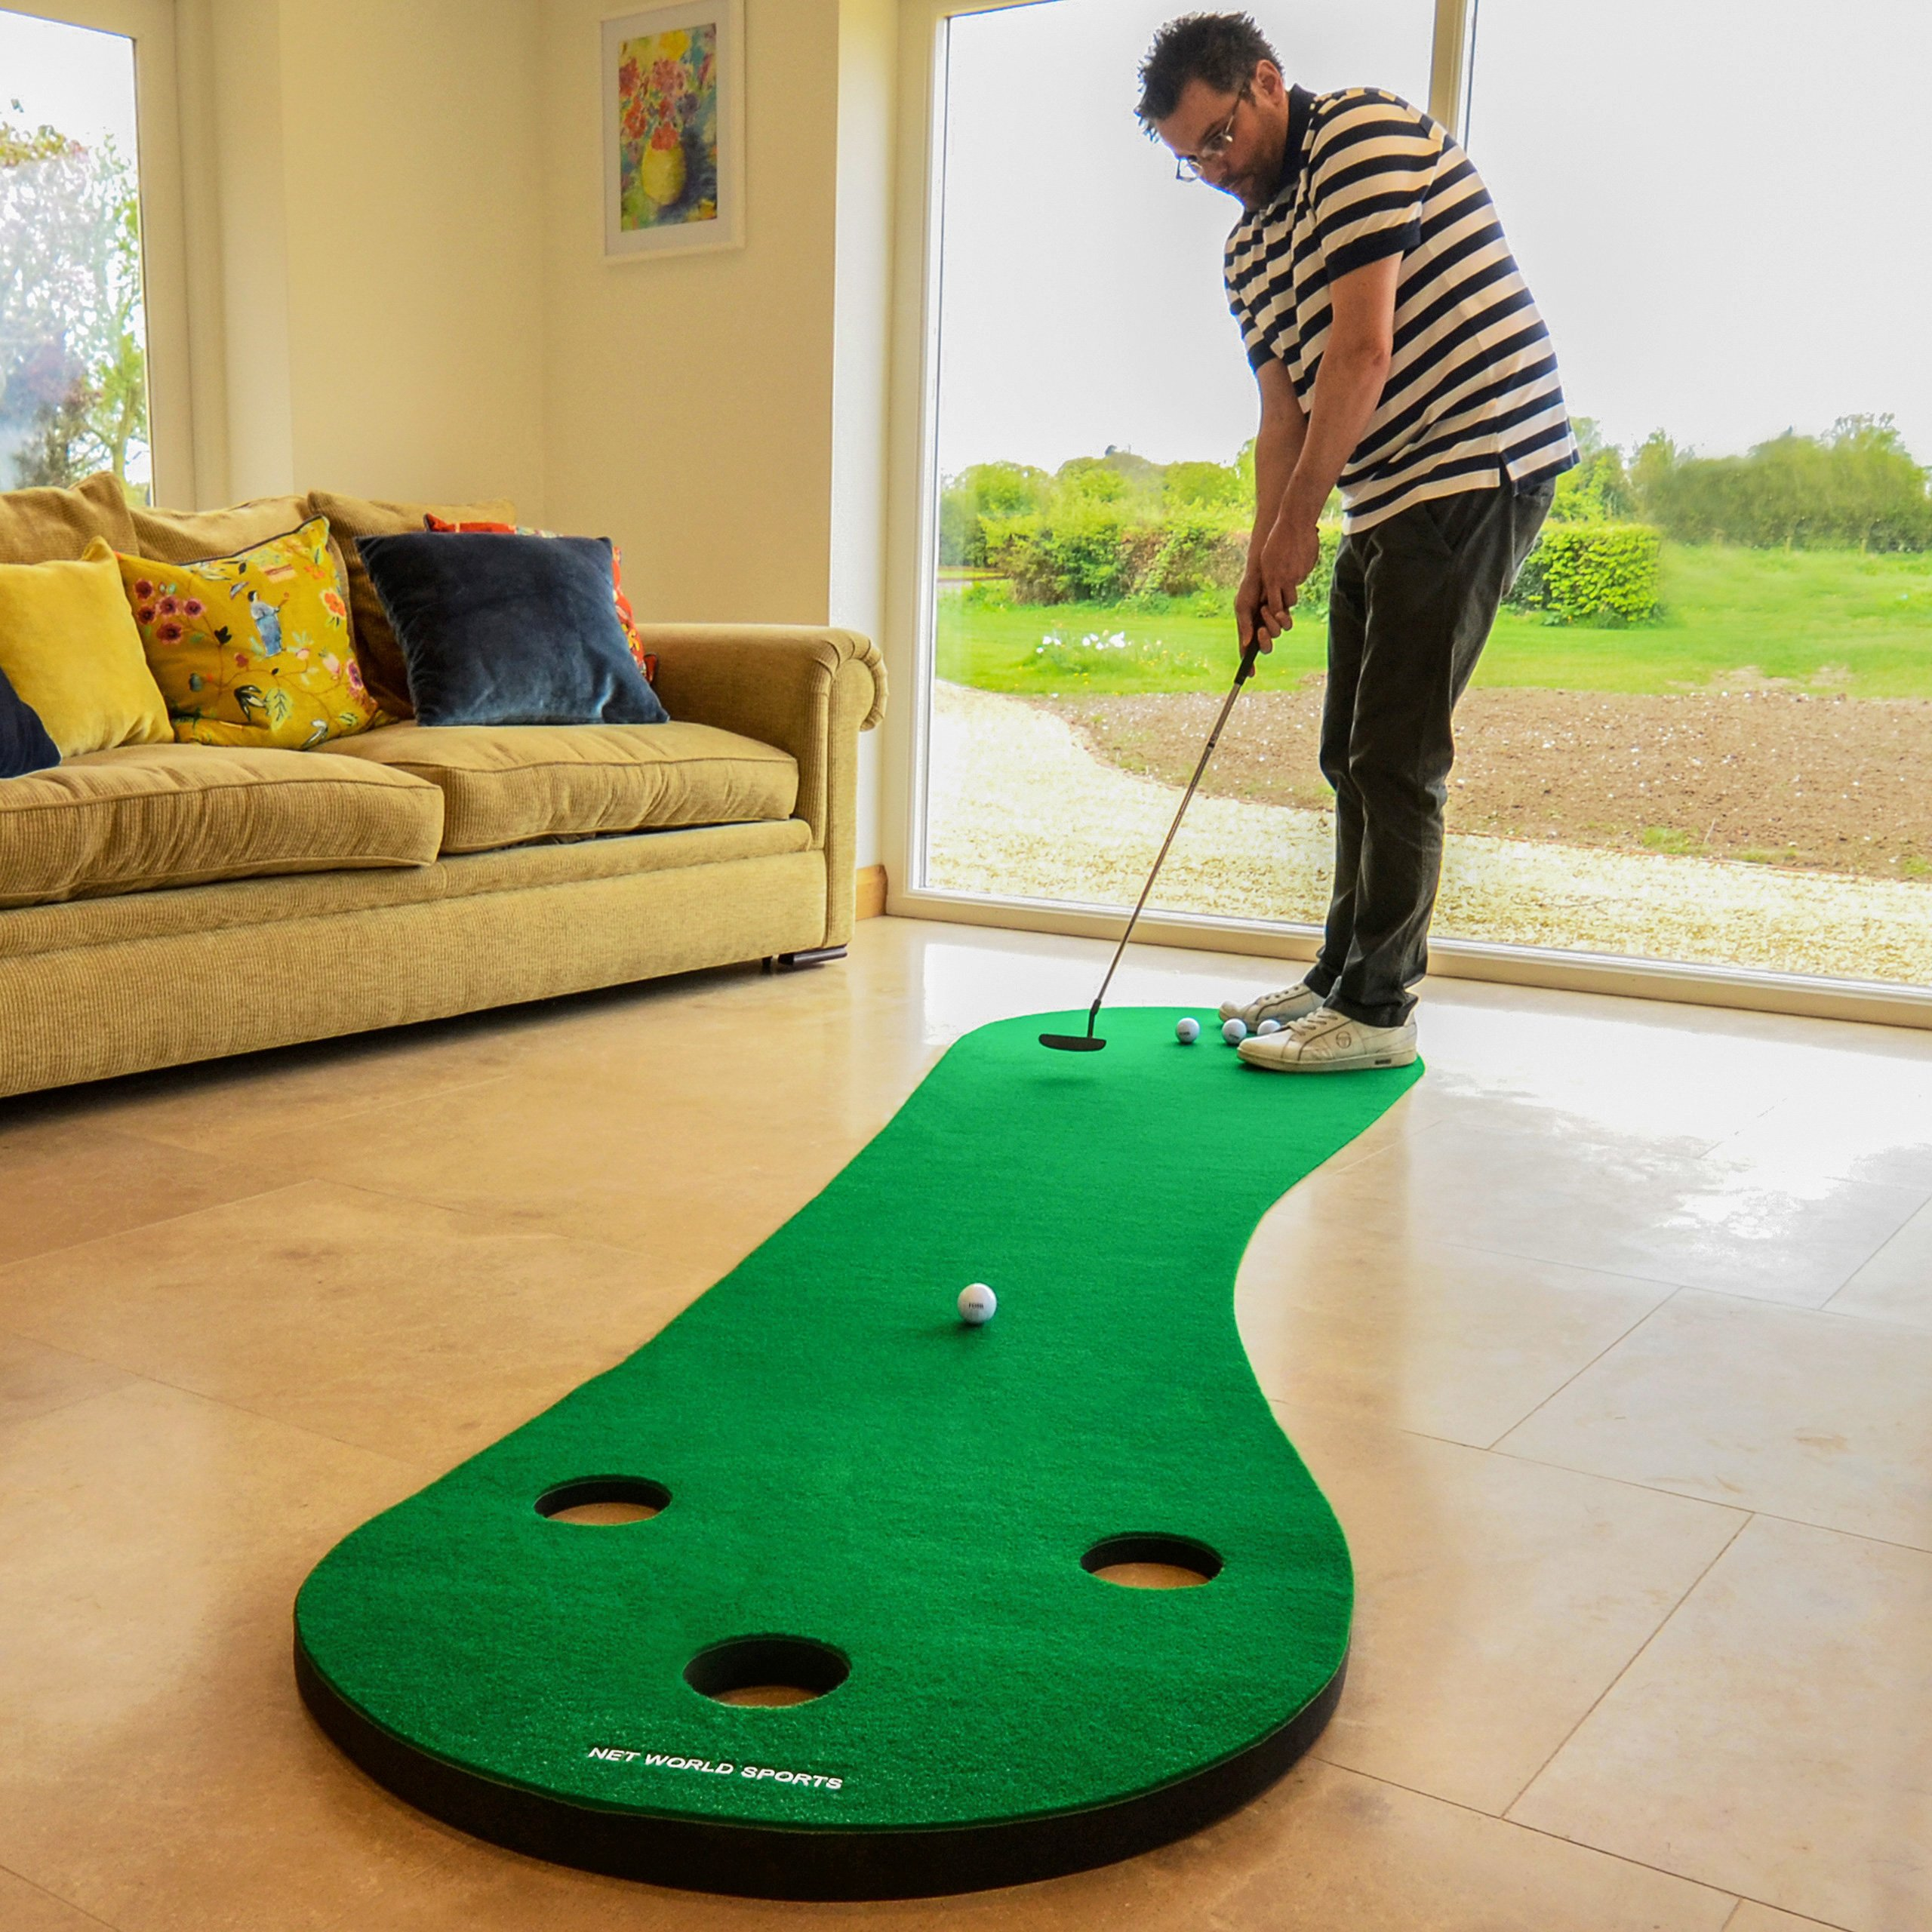 FORB Home Golf Putting Mat 10ft Long - Conquer The Green In Your Own Home! [Net World Sports] by FORB (Image #2)